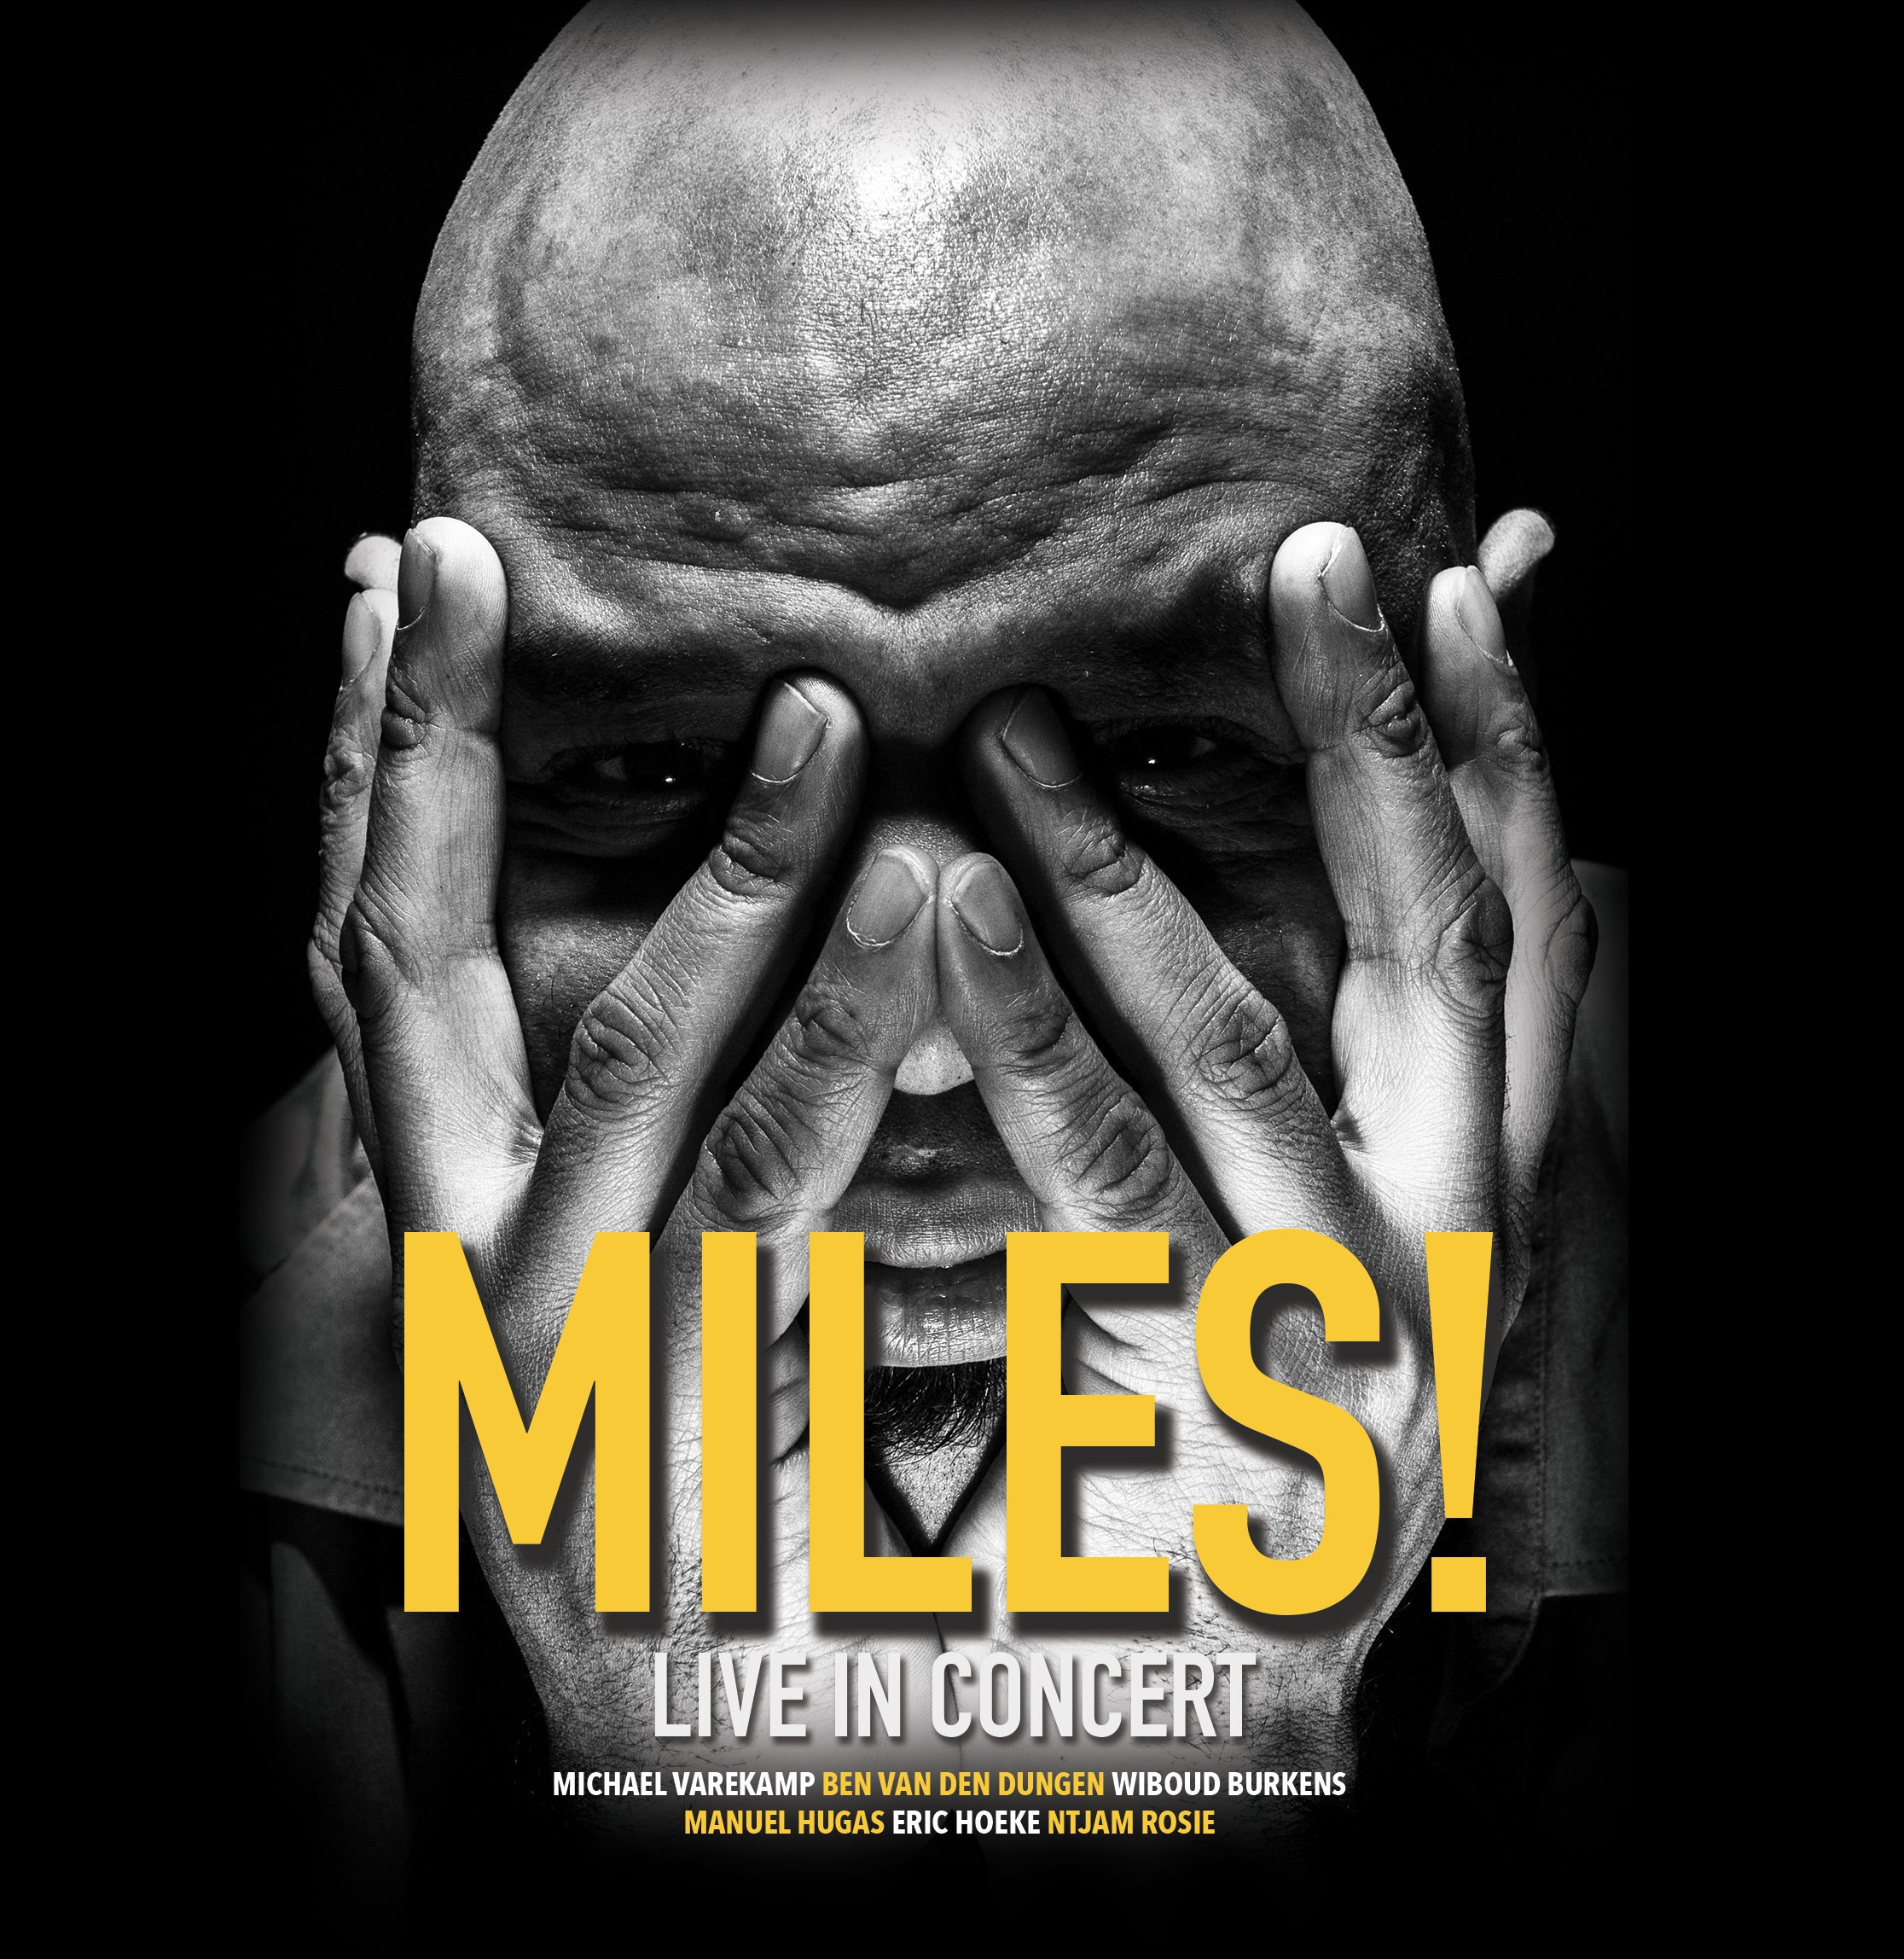 MILES! CD / LP / DVD